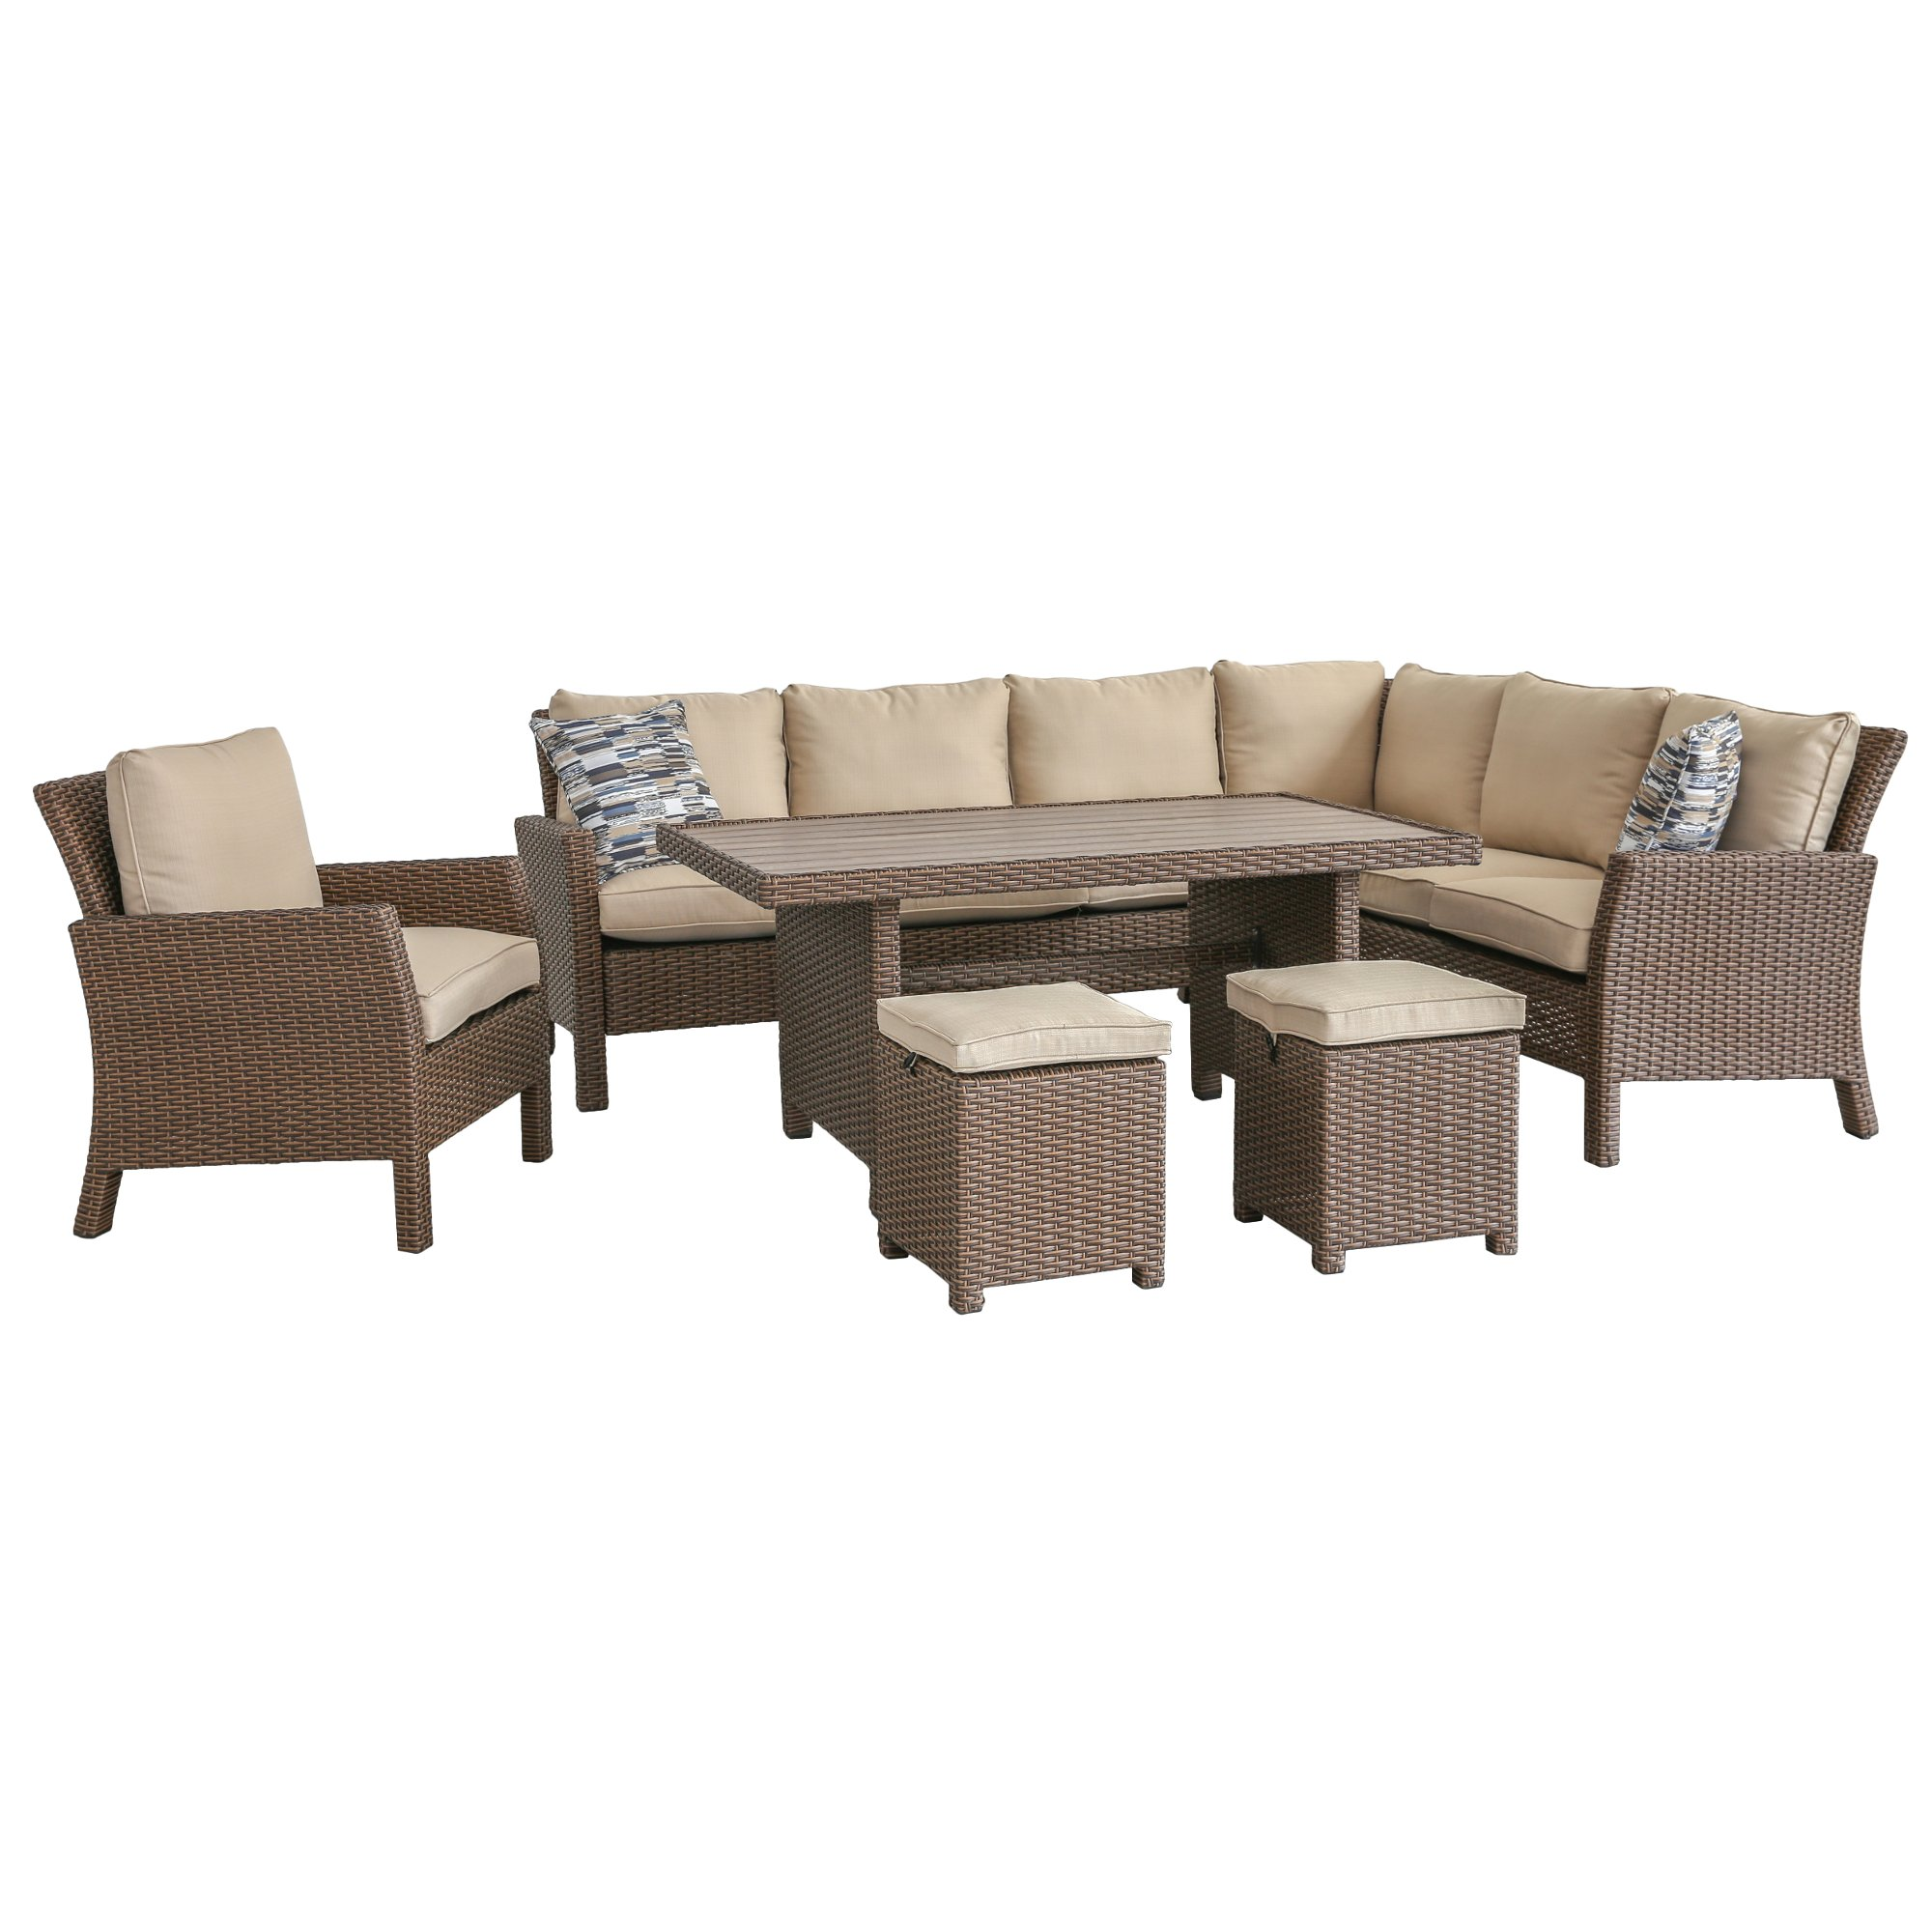 4 Piece Outdoor Patio Furniture Set   Arcadia | RC Willey Furniture Store